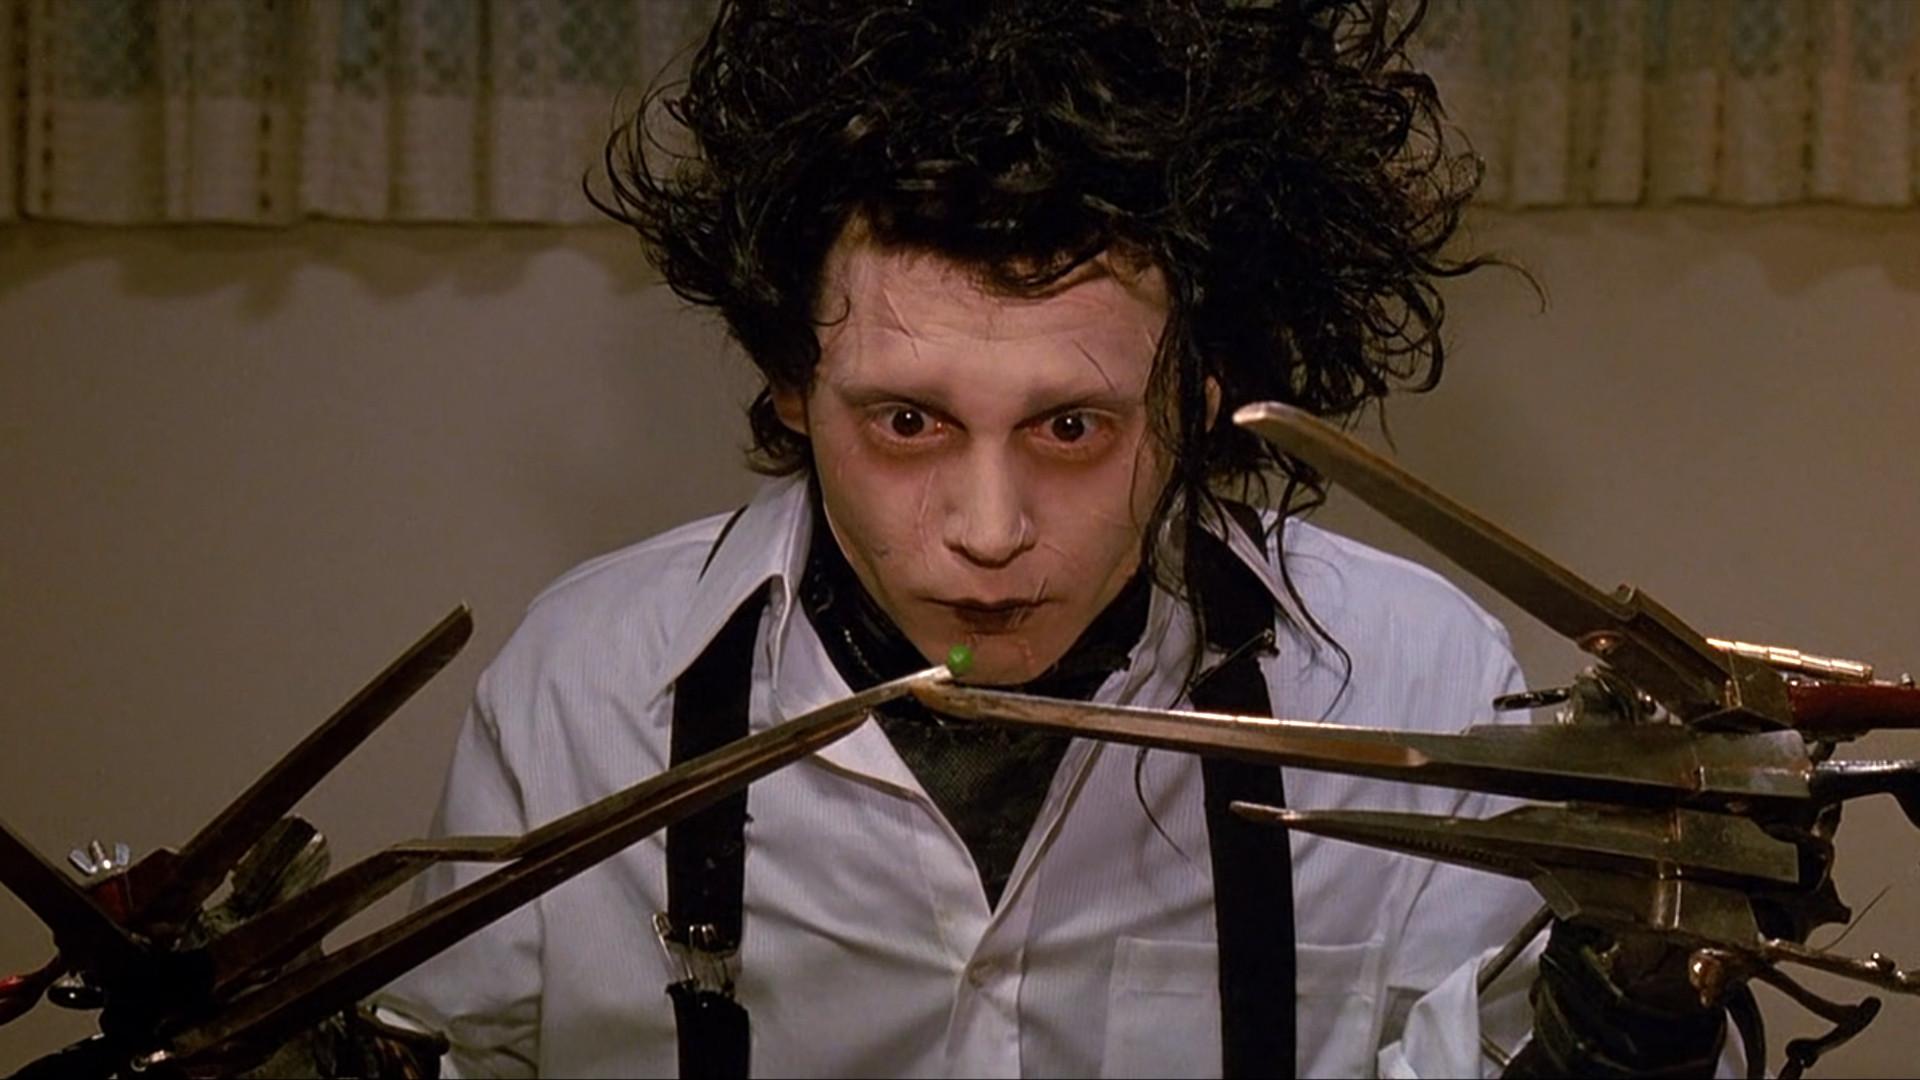 beste kerstfilms Edward Scissorhands